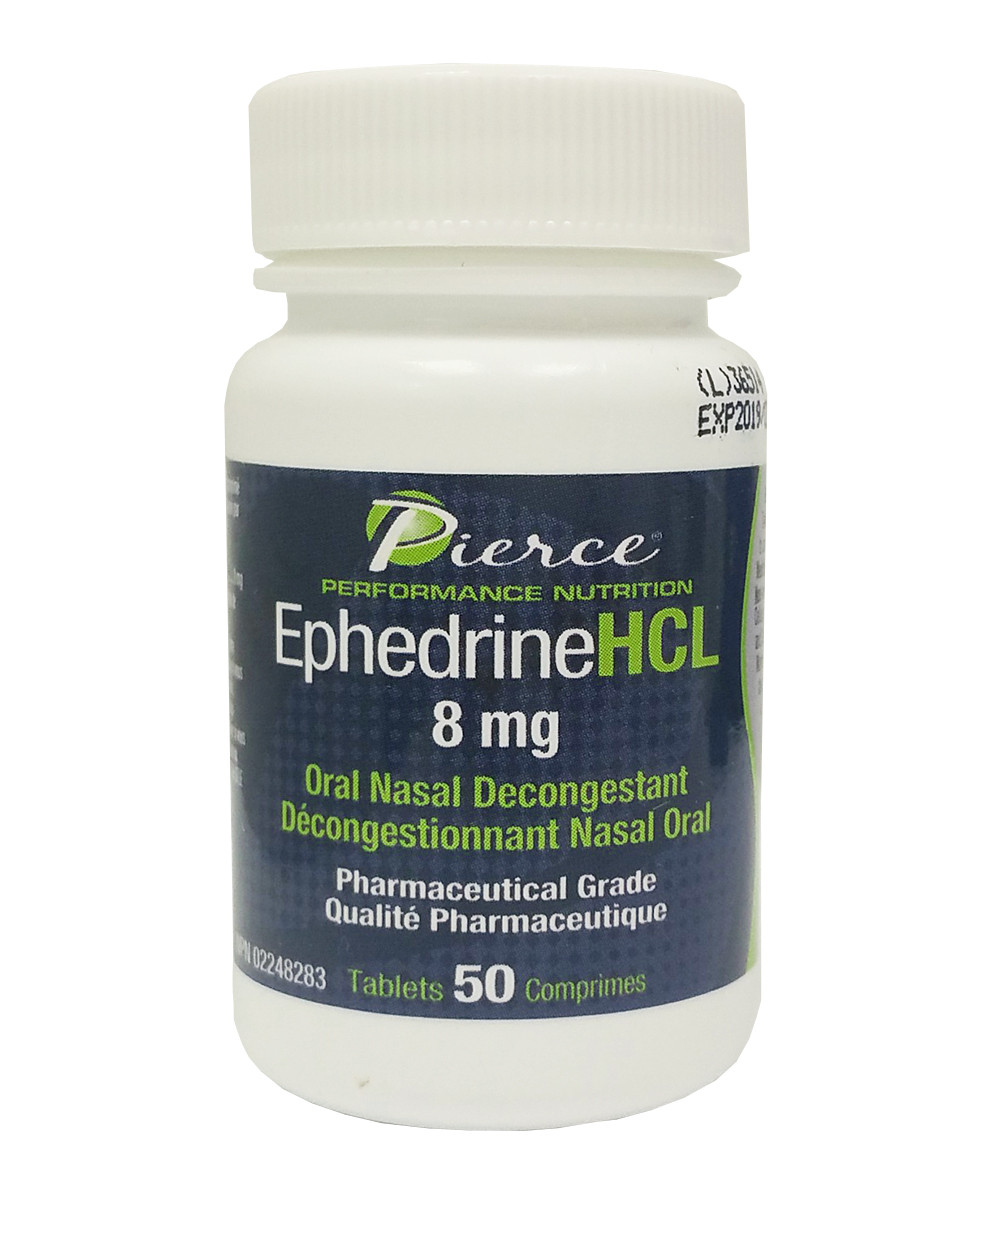 how to take ephedrine hcl for weight loss